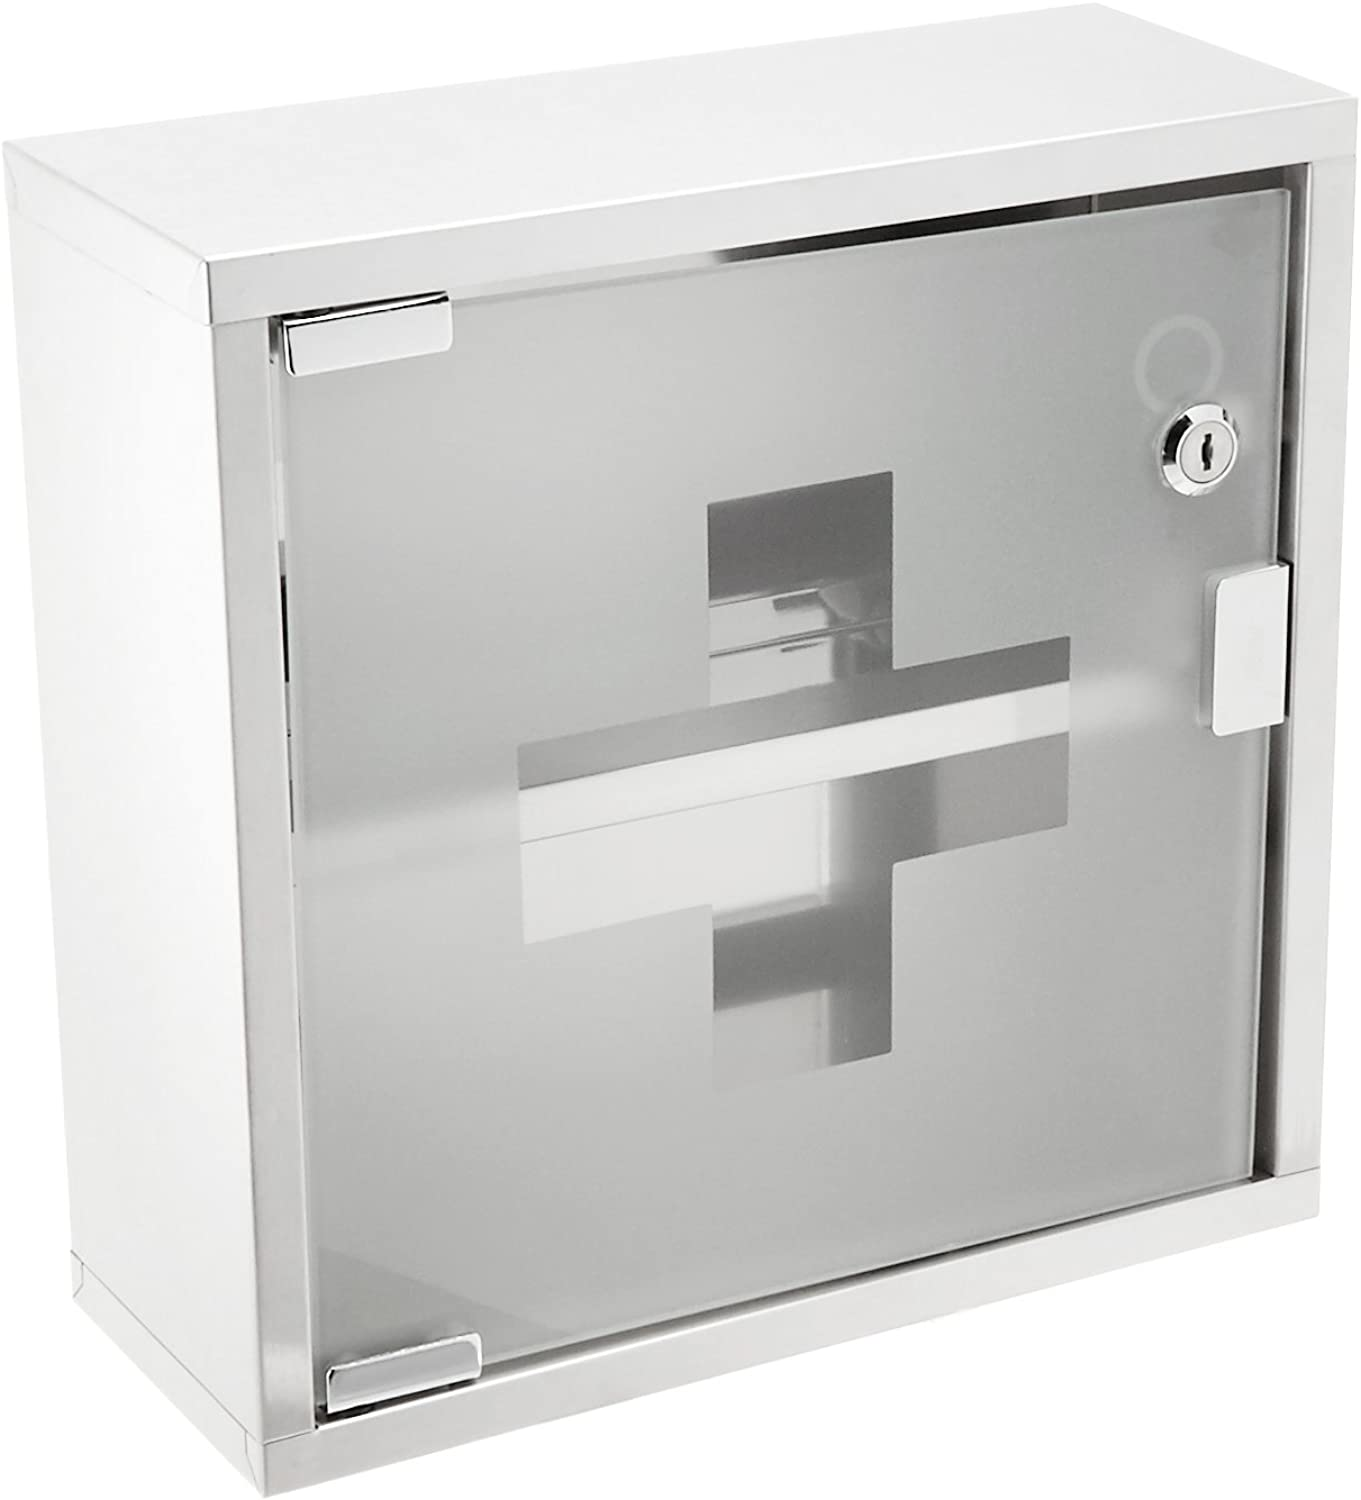 Winco SFAC-12 Stainless Steel First Aid Cabinet, 12-Inch by 12-Inch by 4.75-Inch